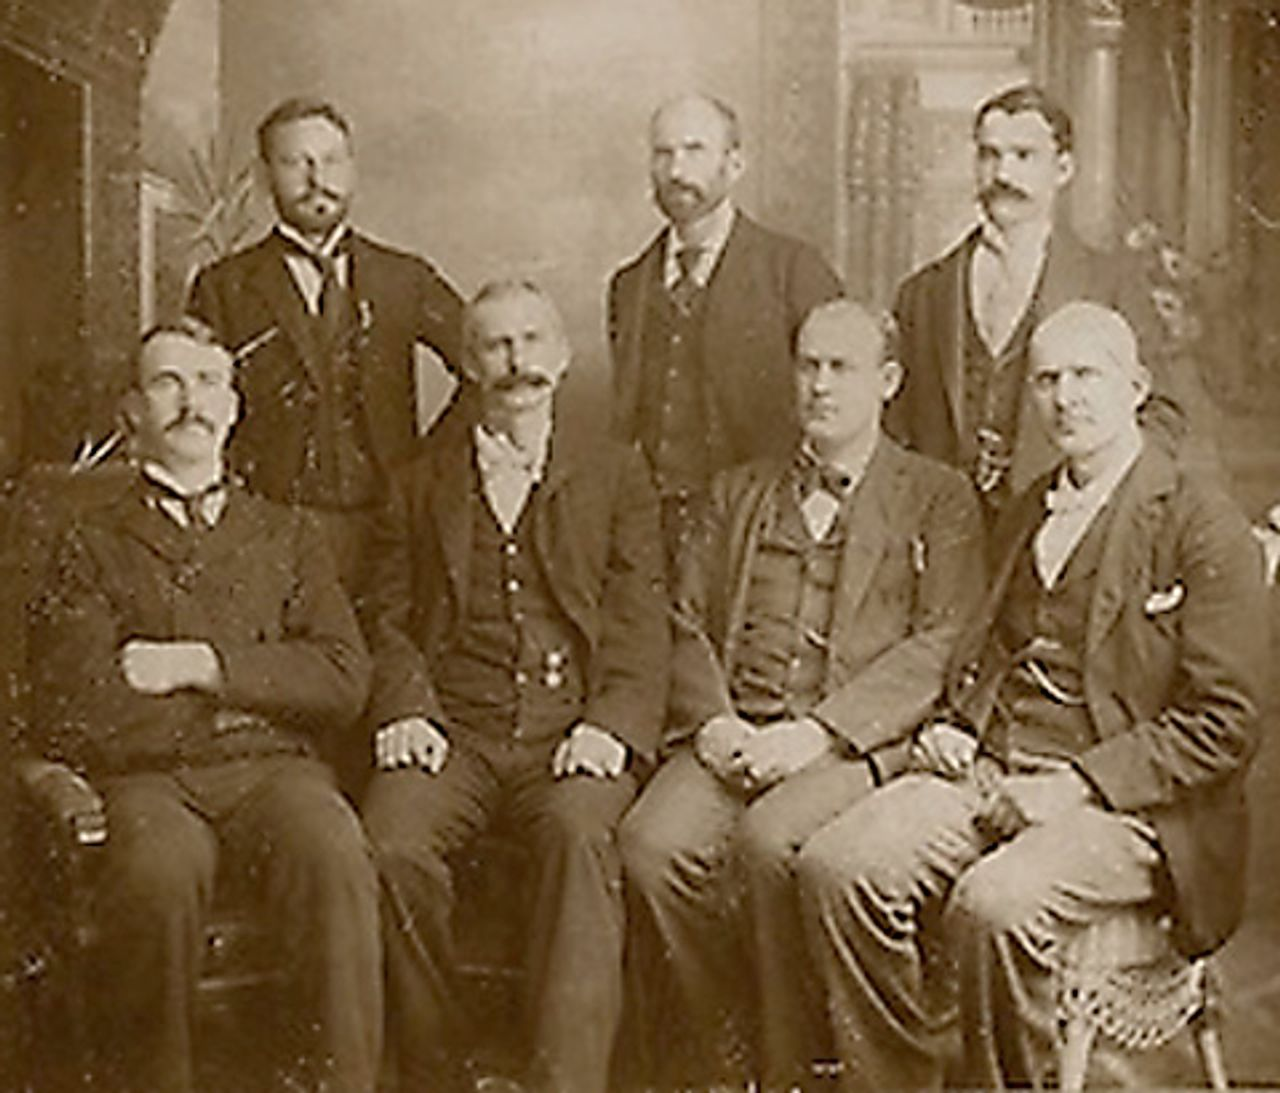 Eugene Debs, seated at the right, and other American Railway Union leaders imprisoned for their role in the Pullman Strike. Debs became a socialist after the experience